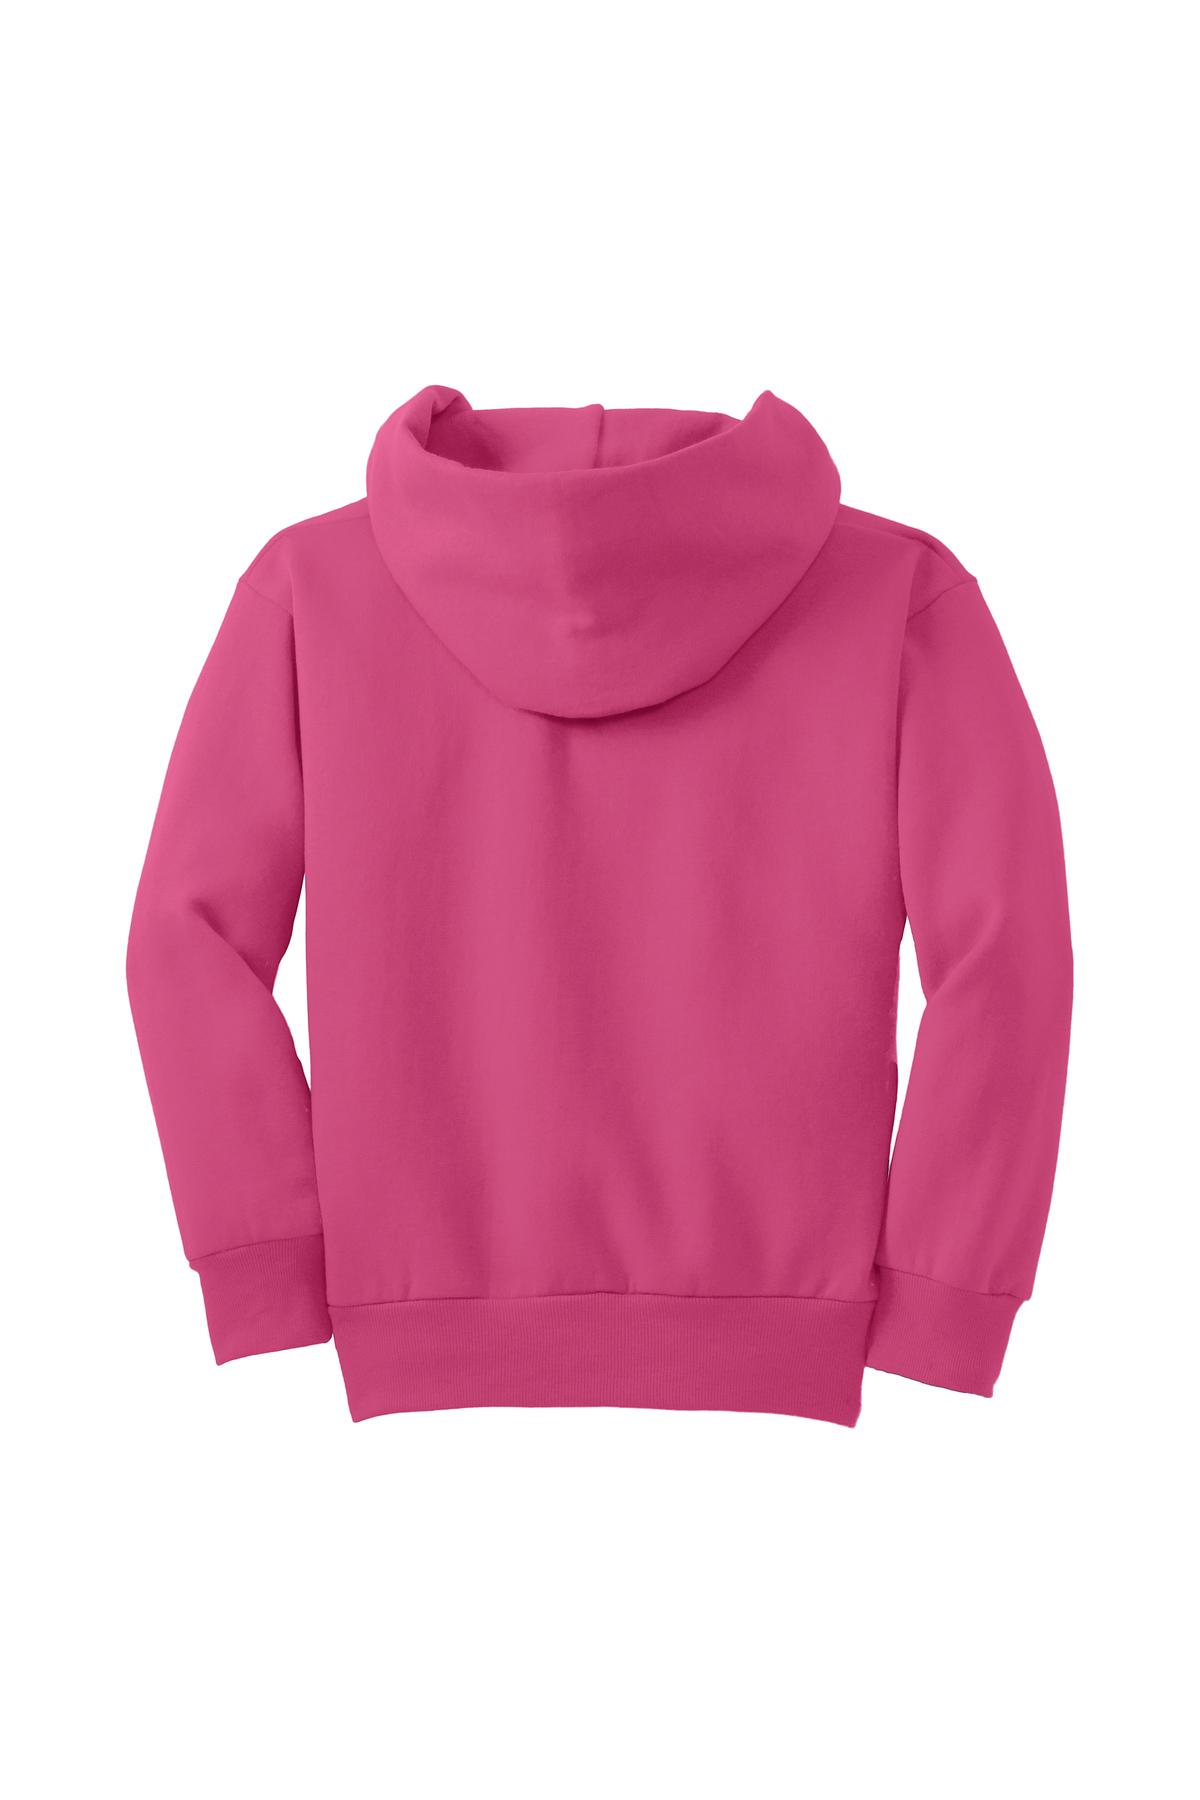 Sangria Port /& Company Youth Pullover Hooded Sweatshirt-XS